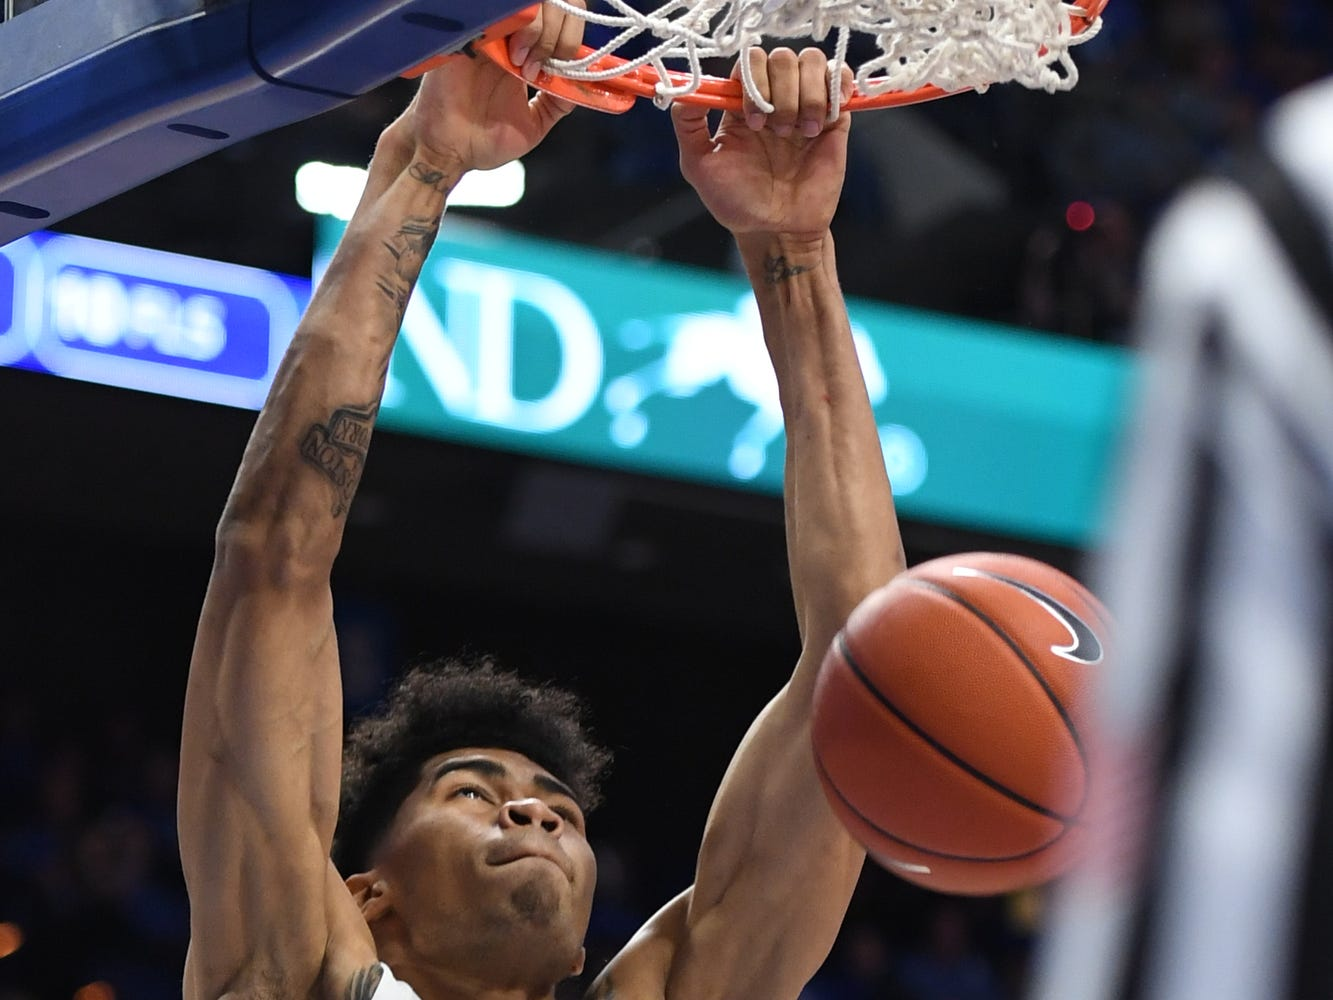 UK F Nick Richards dunks during the University of Kentucky men's basketball game against Tennessee State at Rupp Arena in Lexington, Kentucky, on Friday, Nov. 23, 2018.